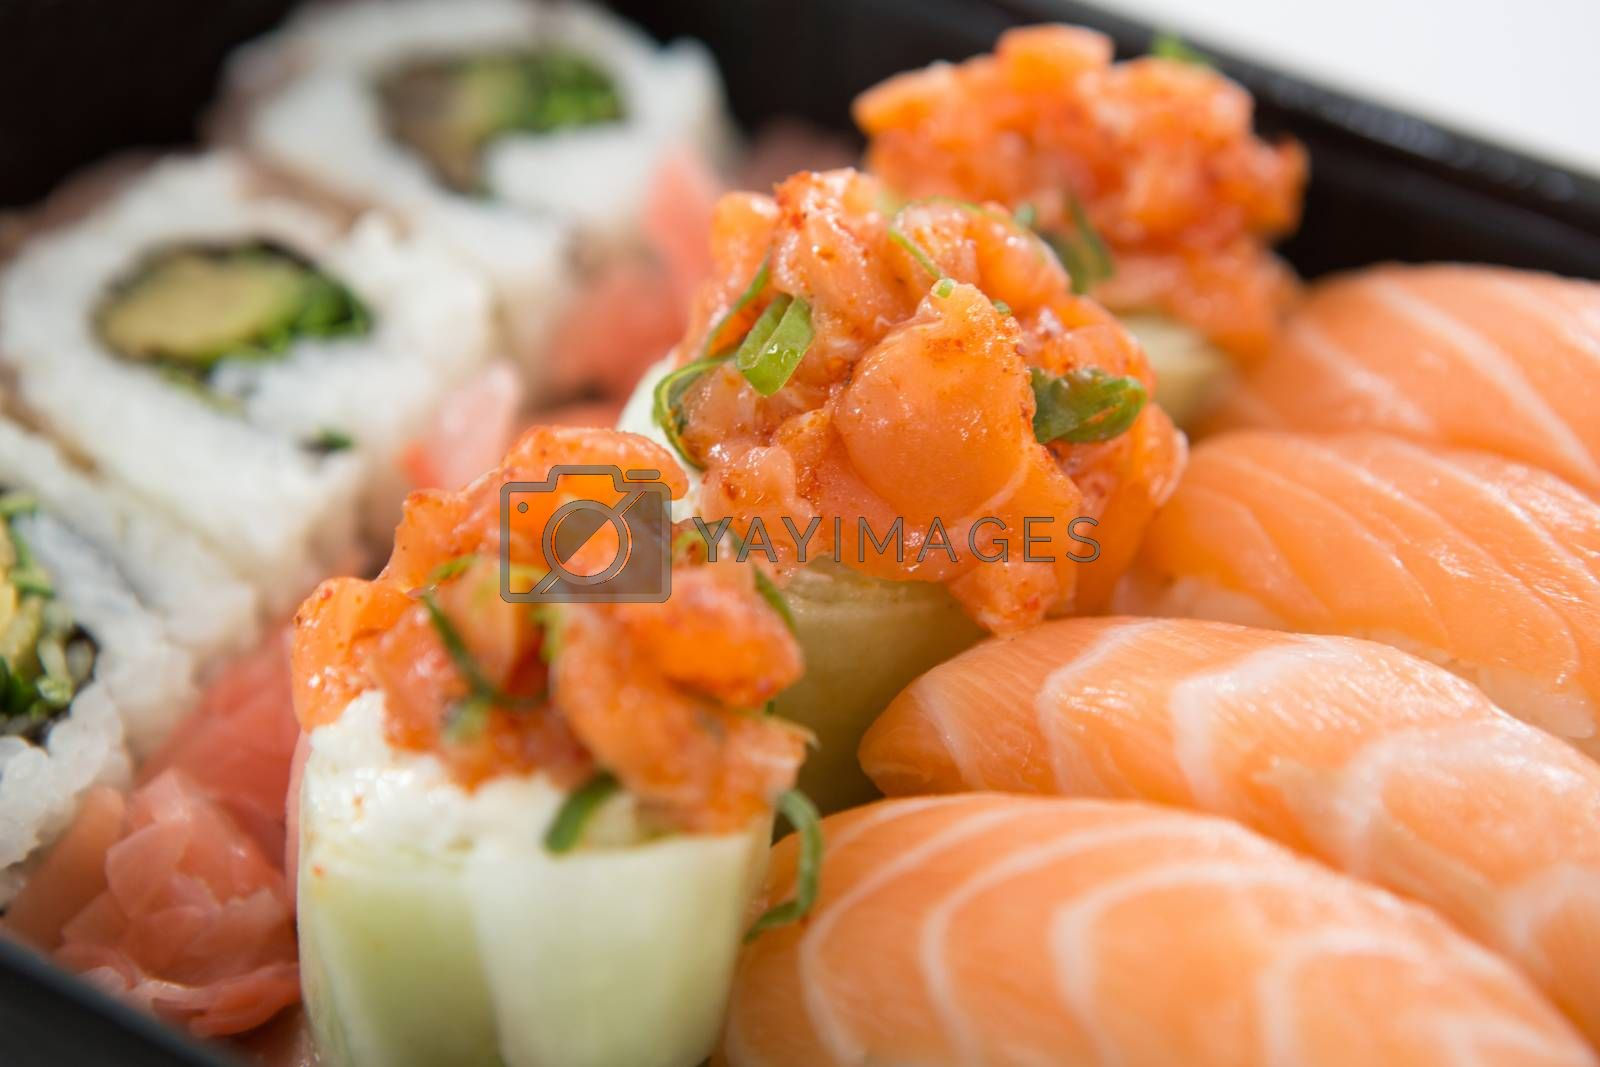 Tray of assorted sushi against white background